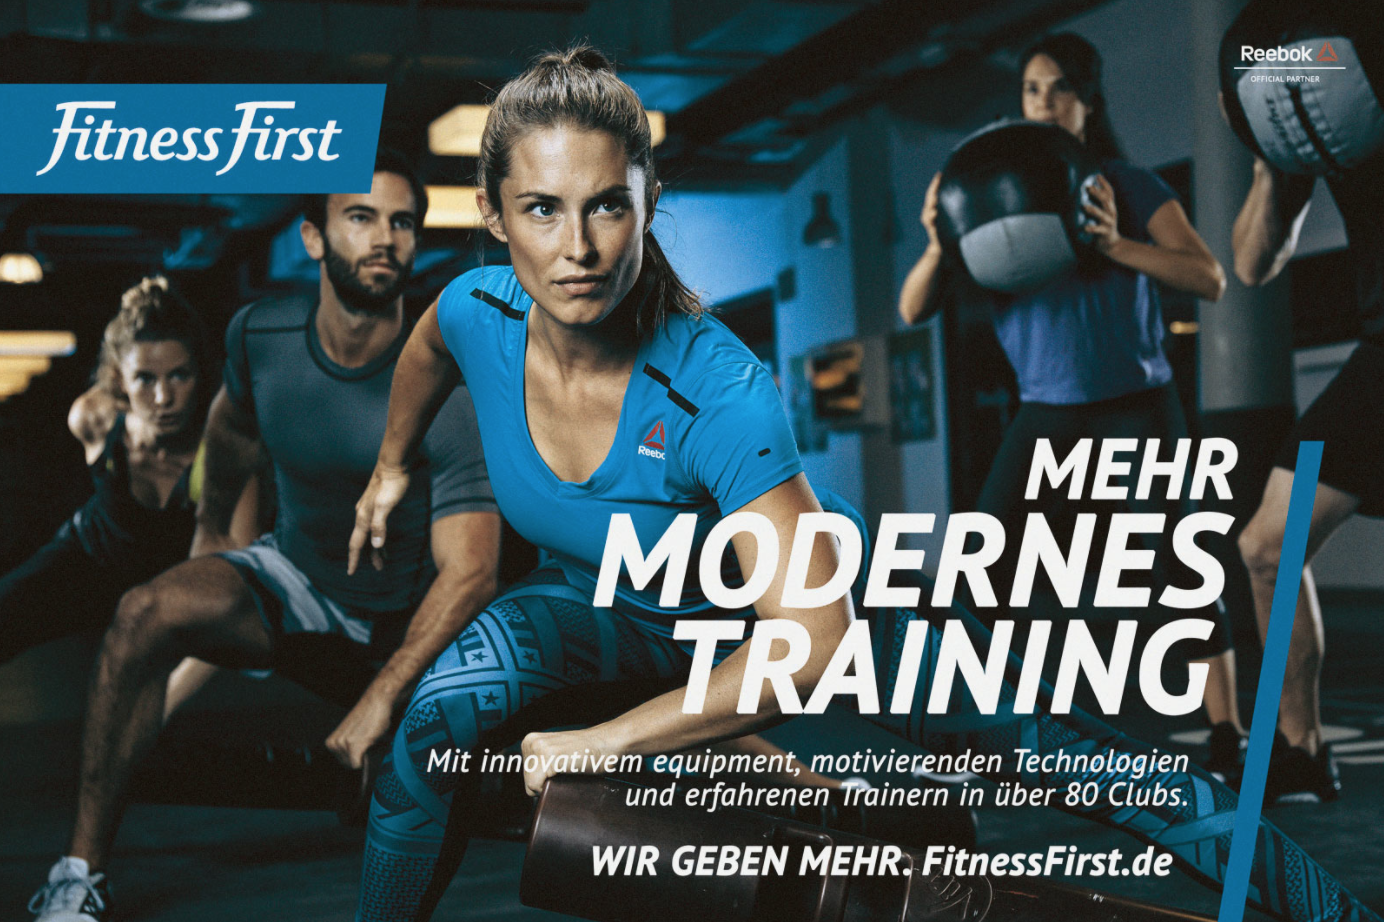 Fitness-first-07